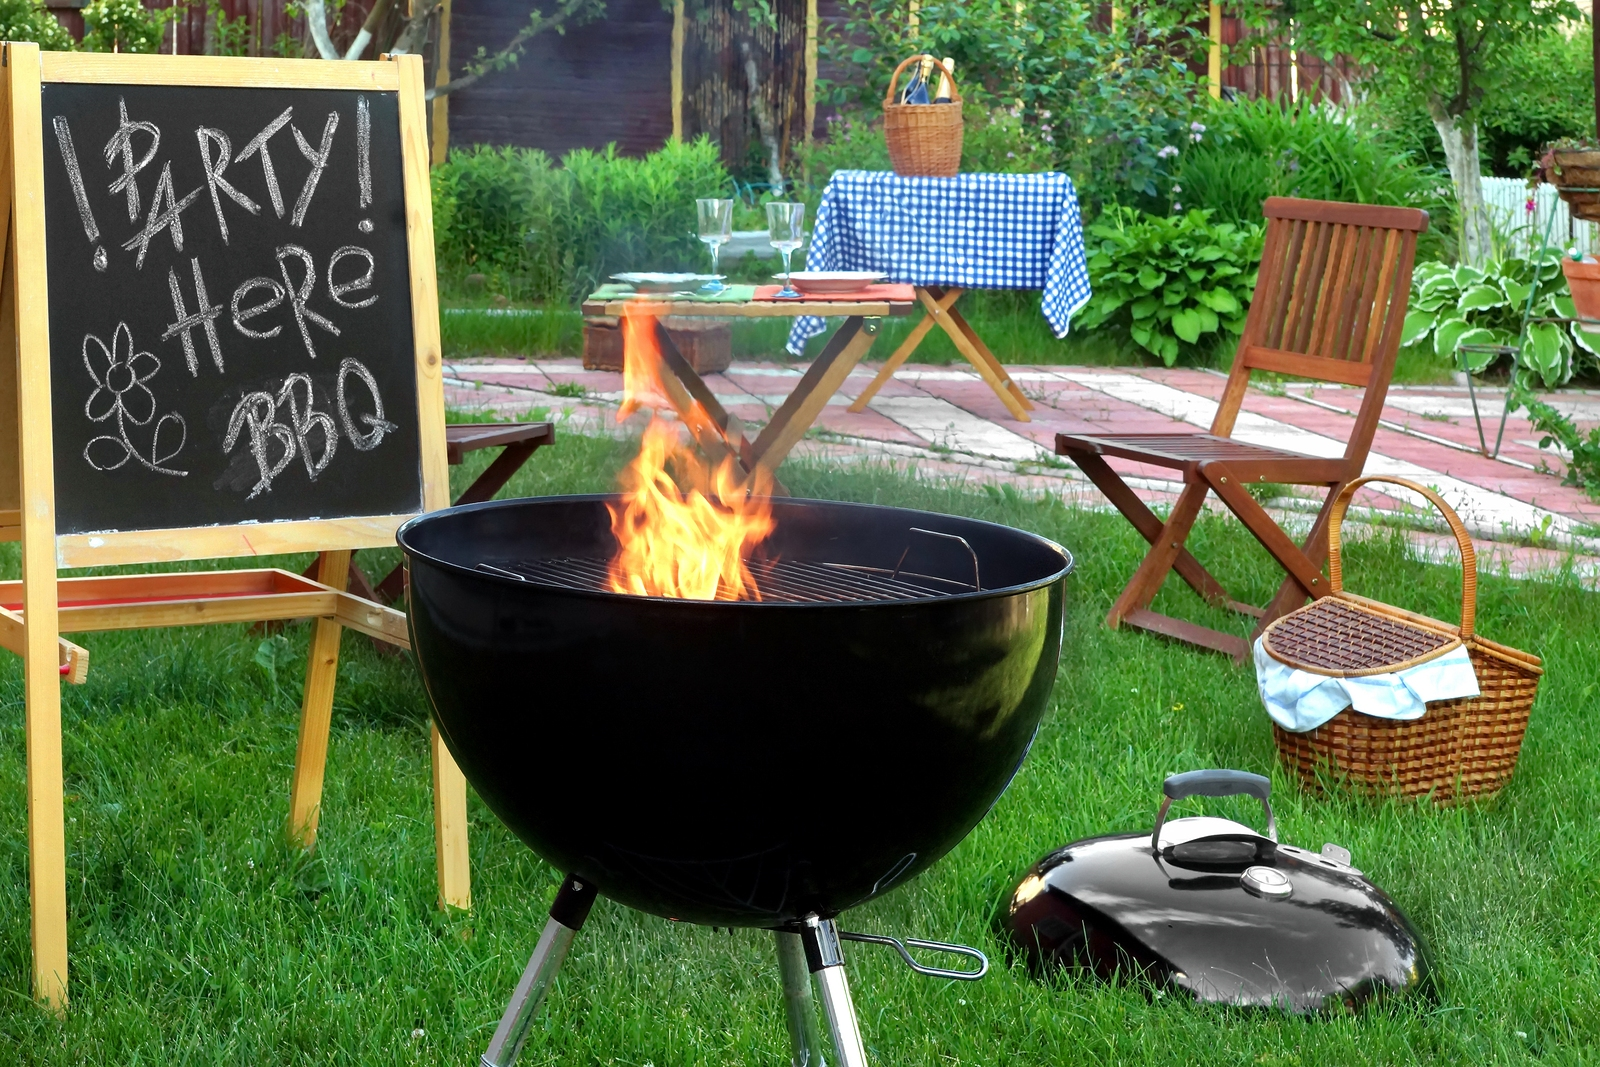 Creative bbq party decorations barbecue party ideas for Backyard bbq decoration ideas